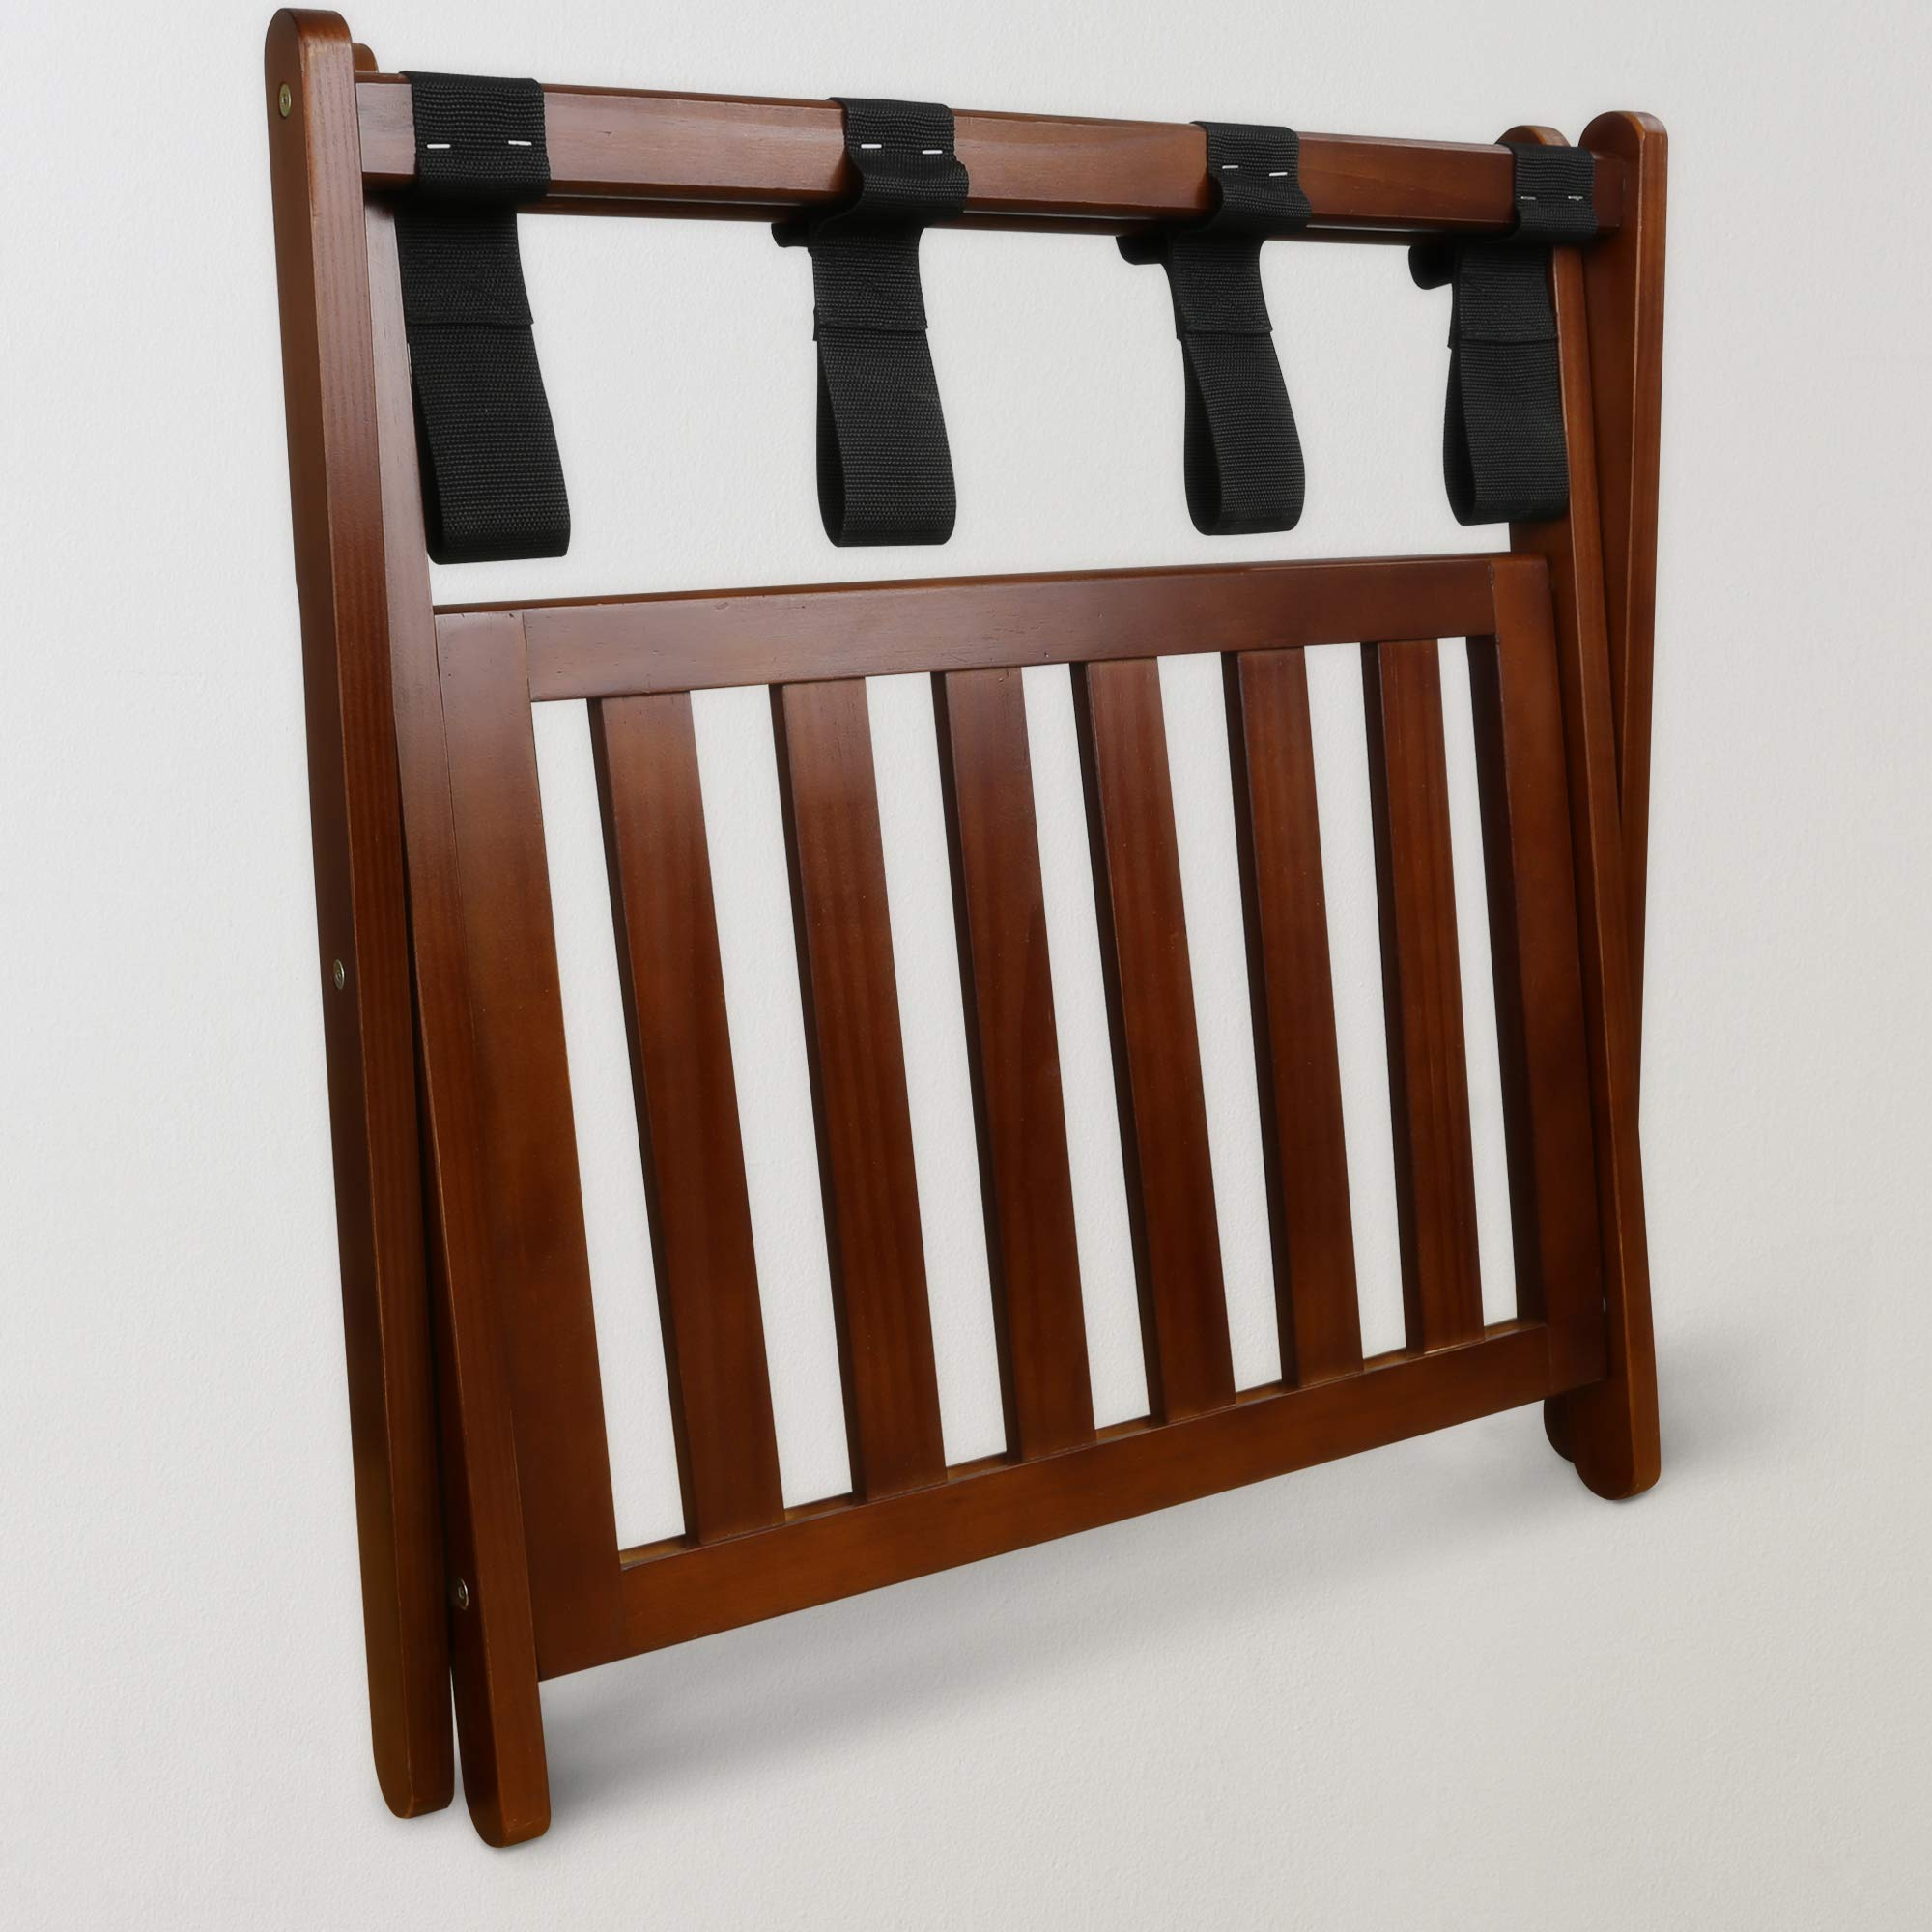 Casual Home Luggage Rack with Shelf by Casual Home (Image #9)